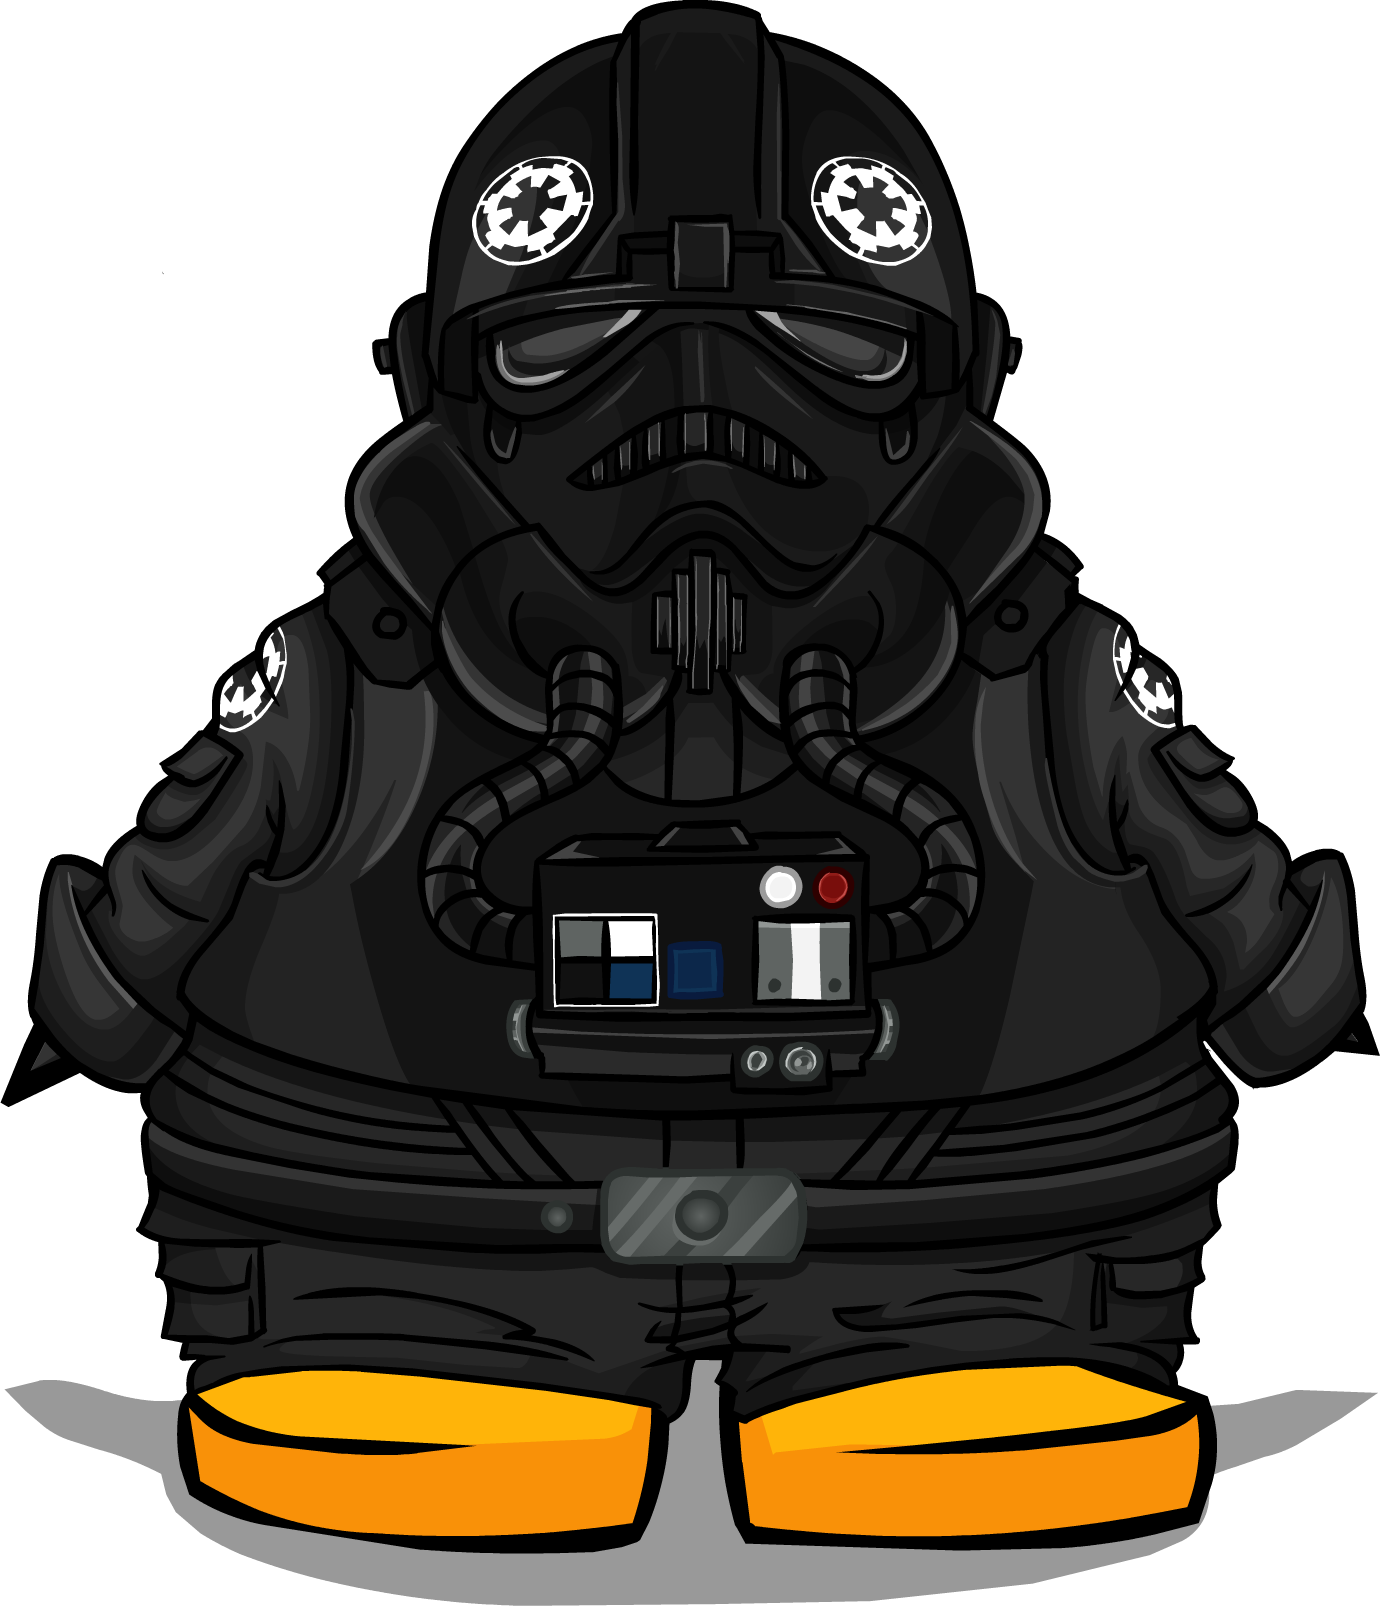 Pilot drawing sketch. Image tie fighter costume